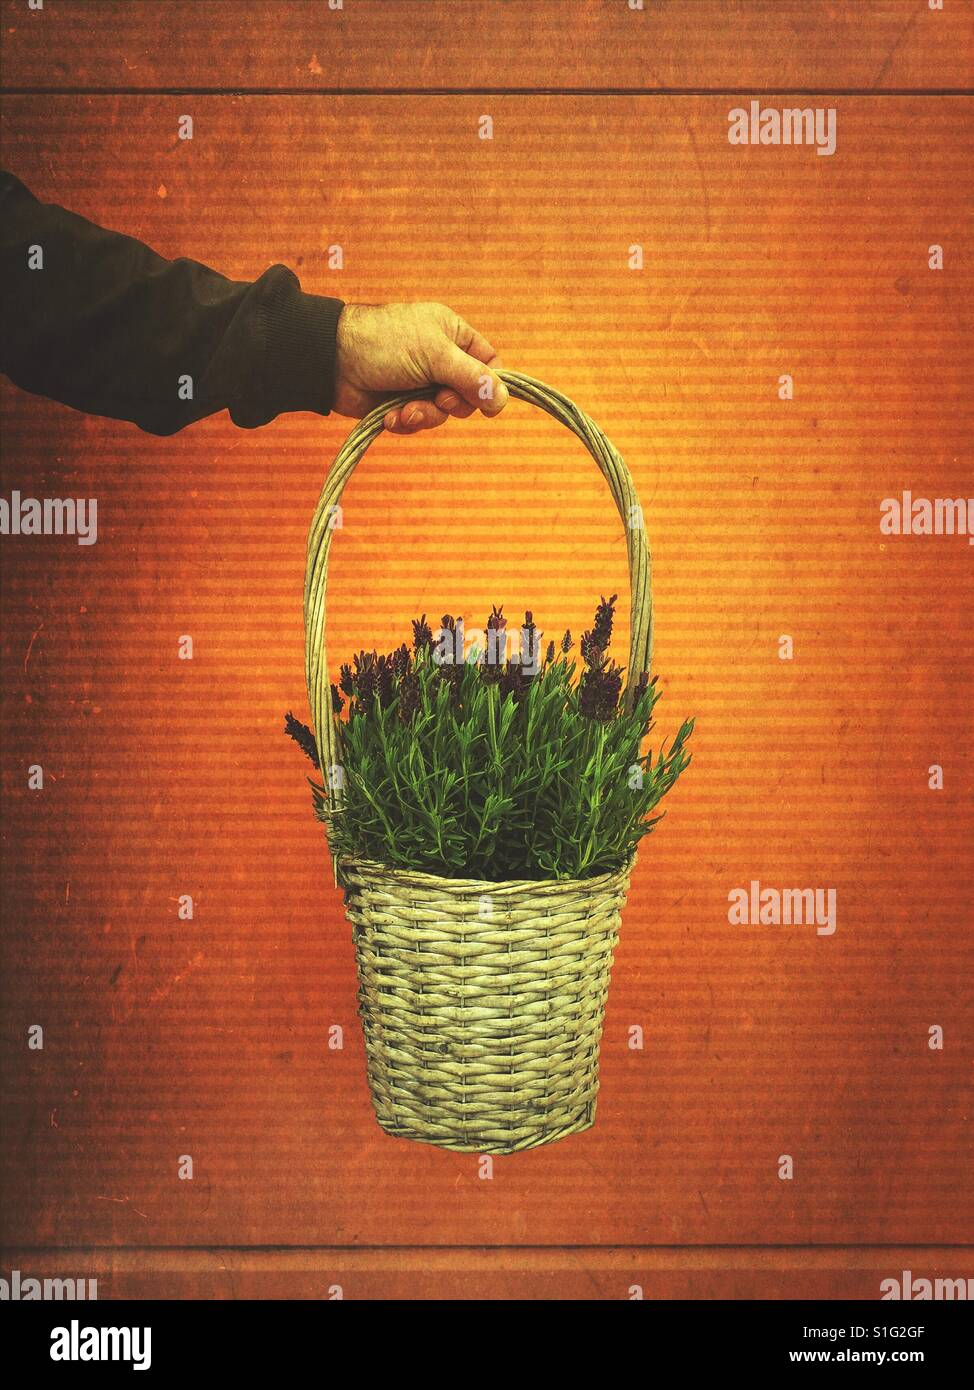 Man's hand holding a basket of lavender flowers - Stock Image